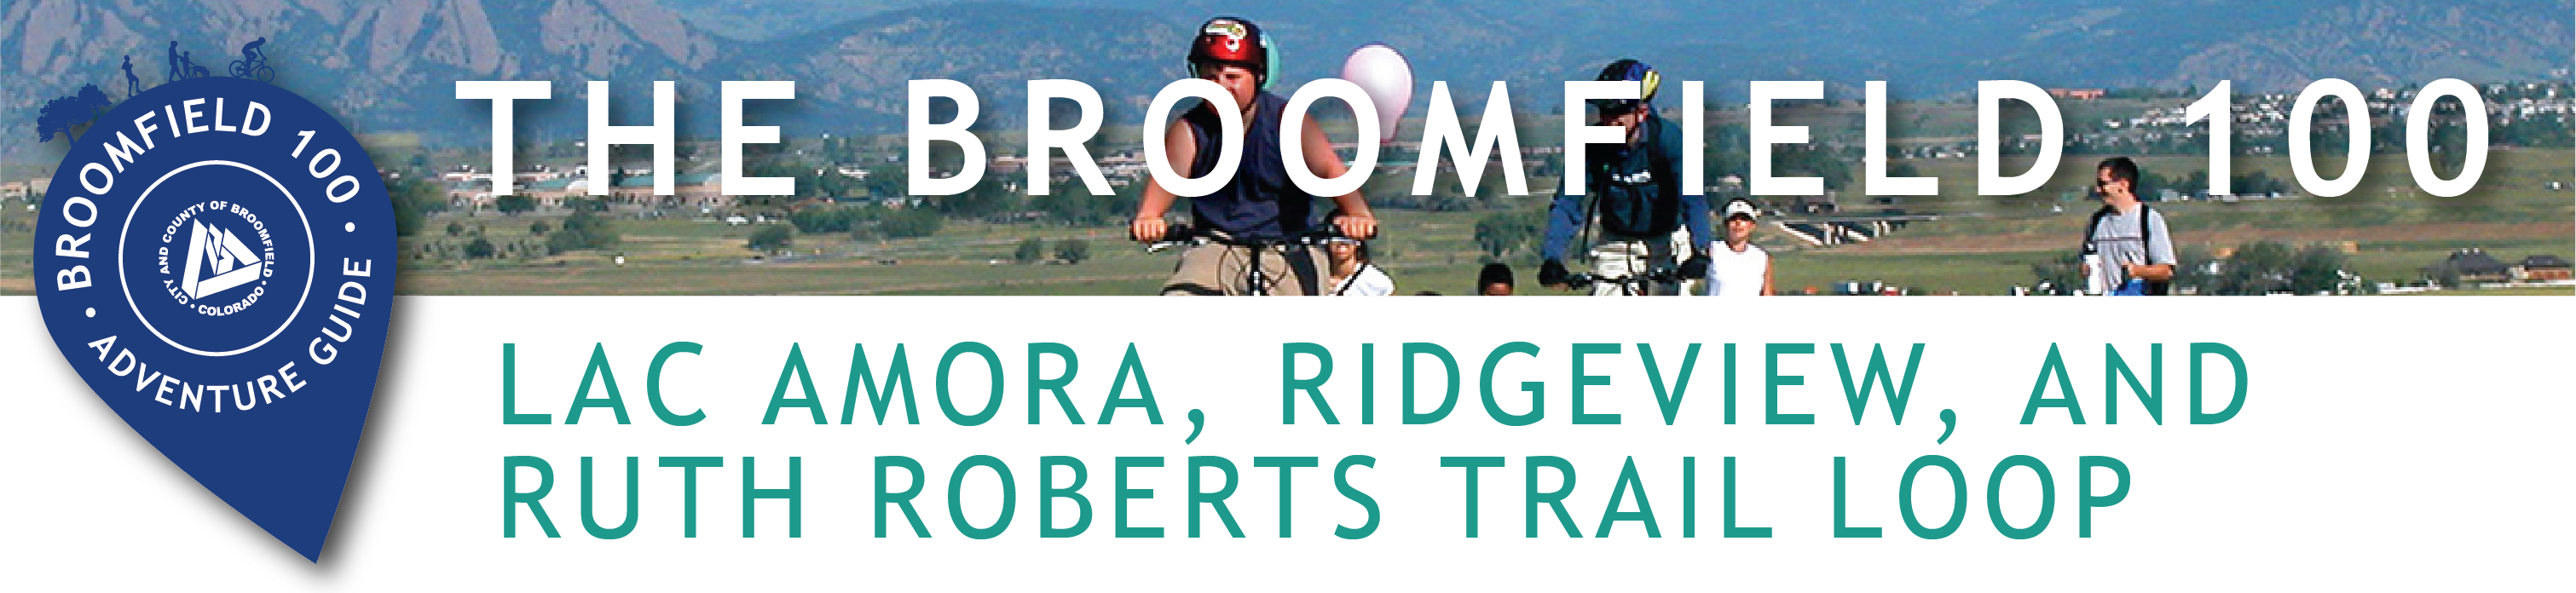 2019 Broomfield100 web banners_lac amora ridgeview ruth roberts